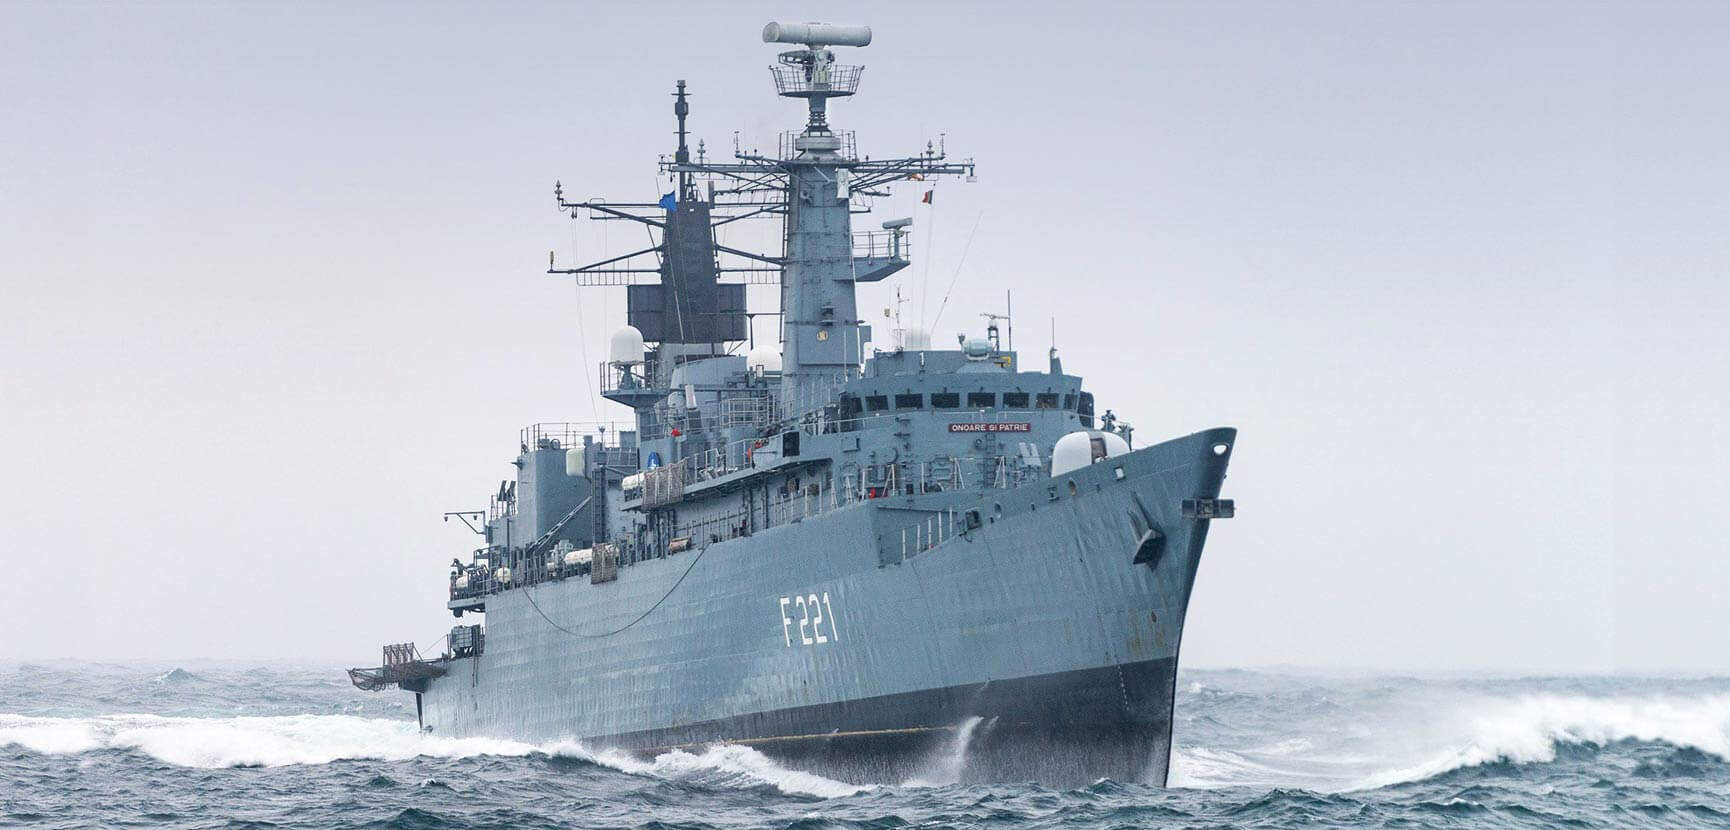 Sailing under a different flag – former Royal Navy vessels serving with other navies